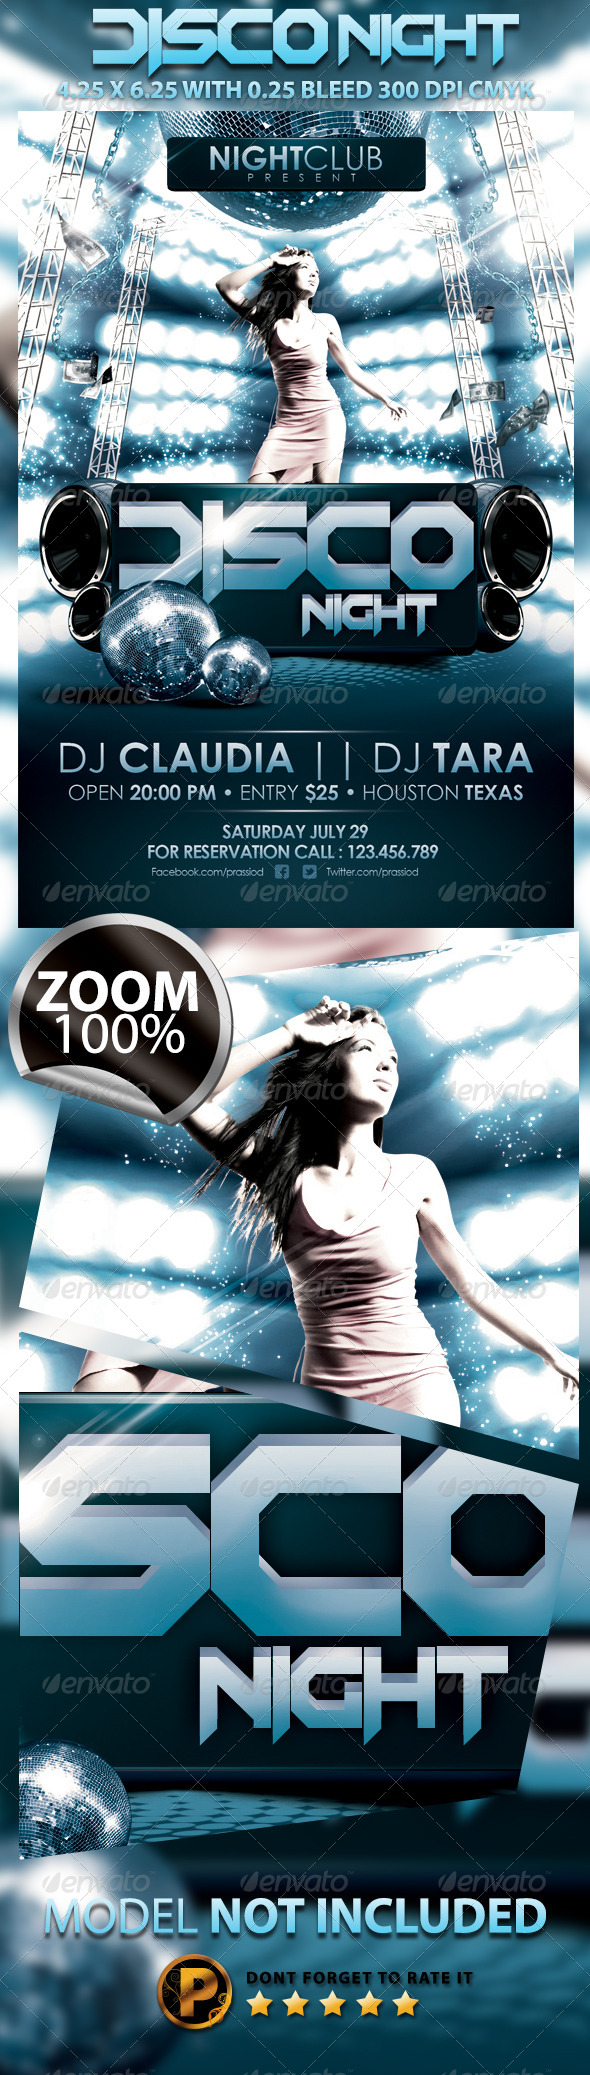 Disco Night Party Flyer Template - Clubs & Parties Events